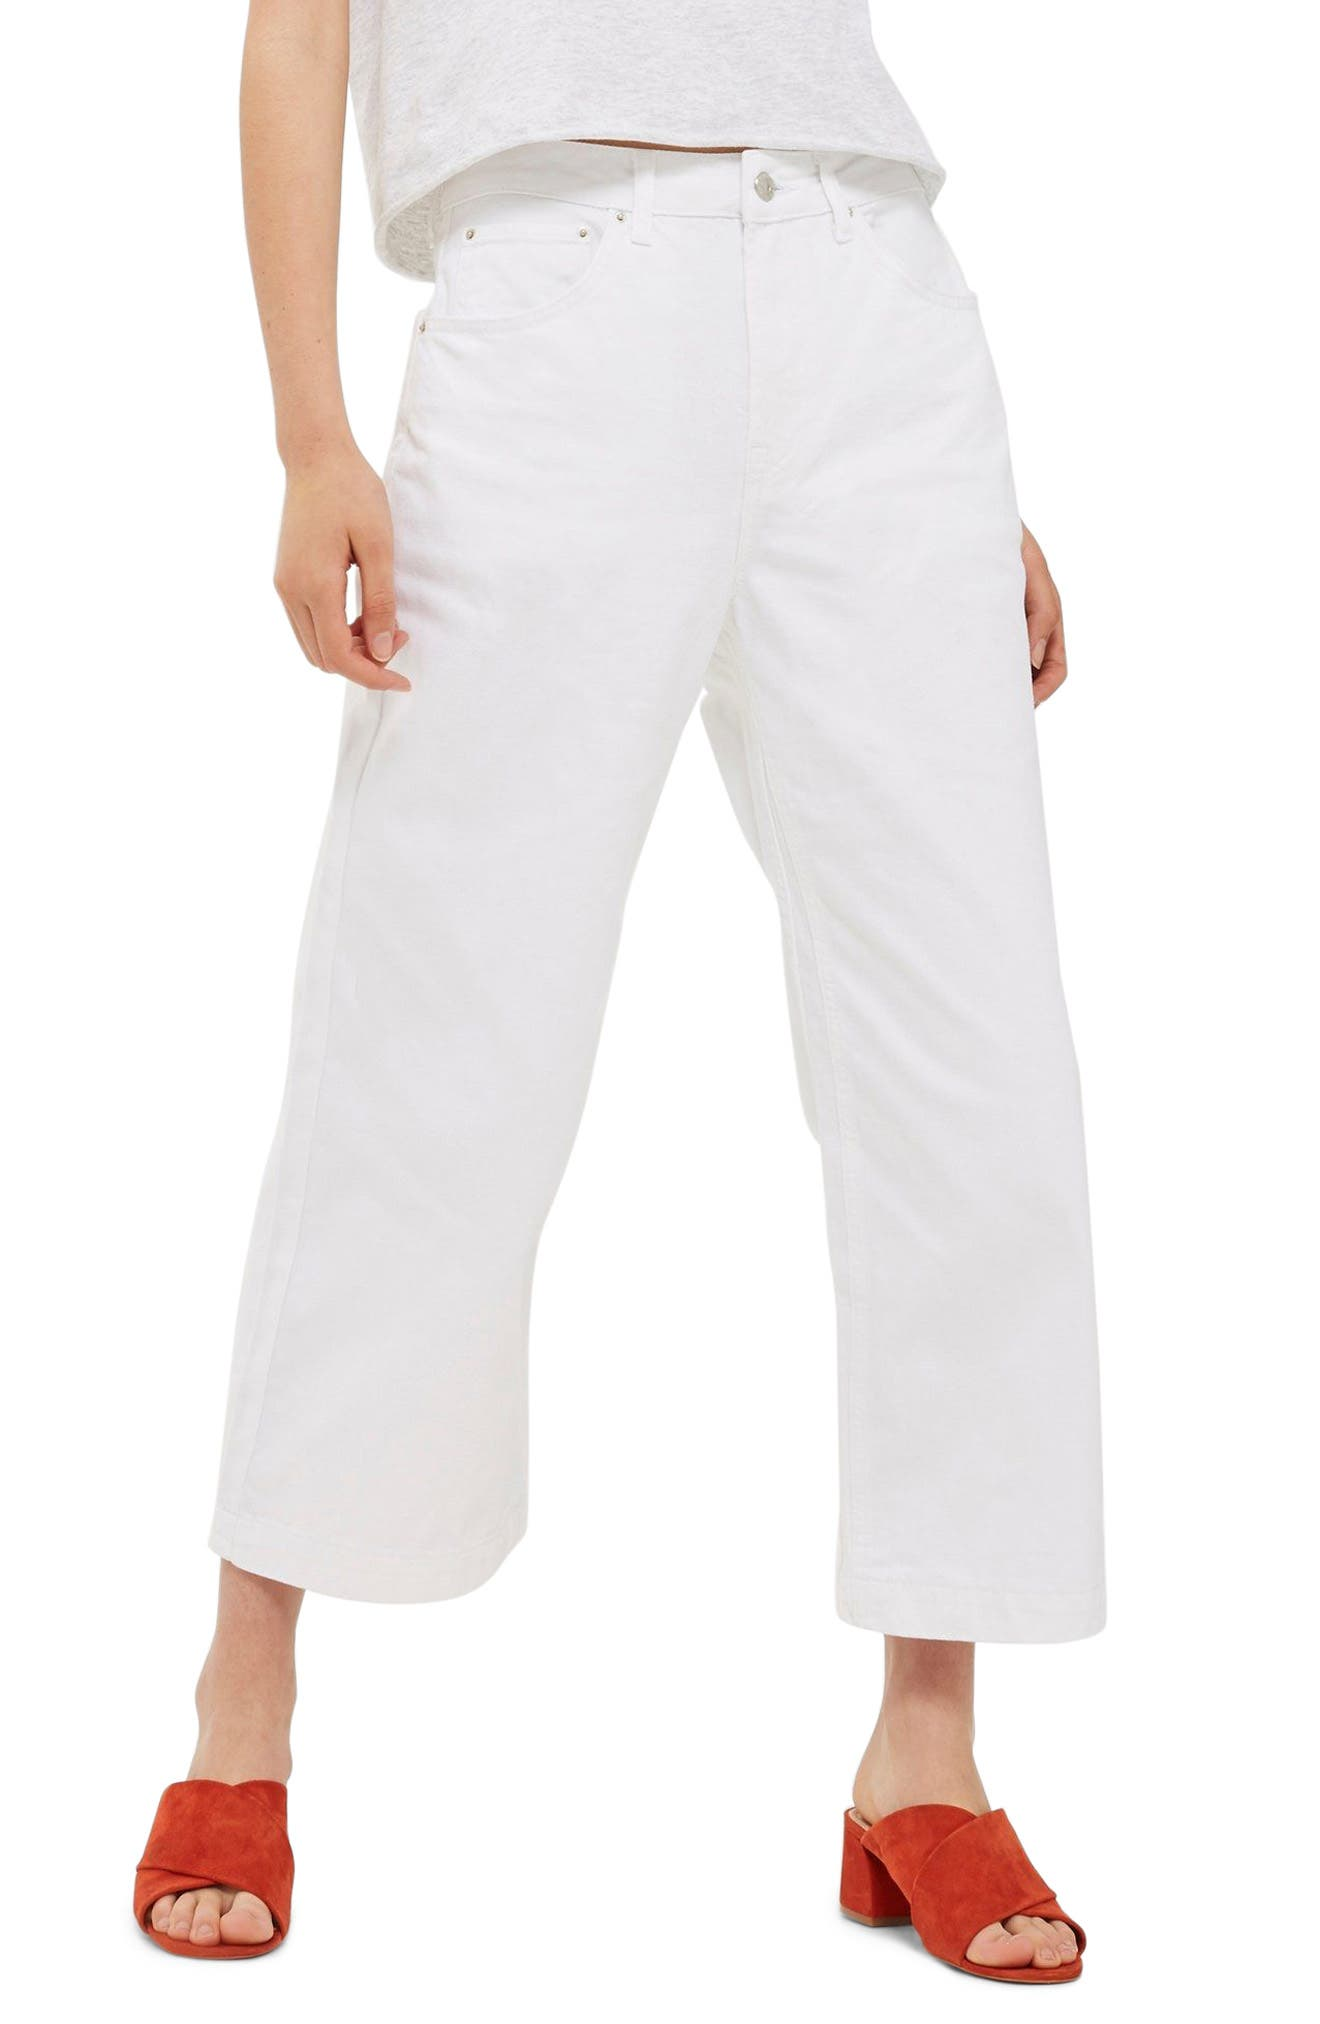 Topshop MOTO Cropped Wide Leg Non-Stretch Jeans